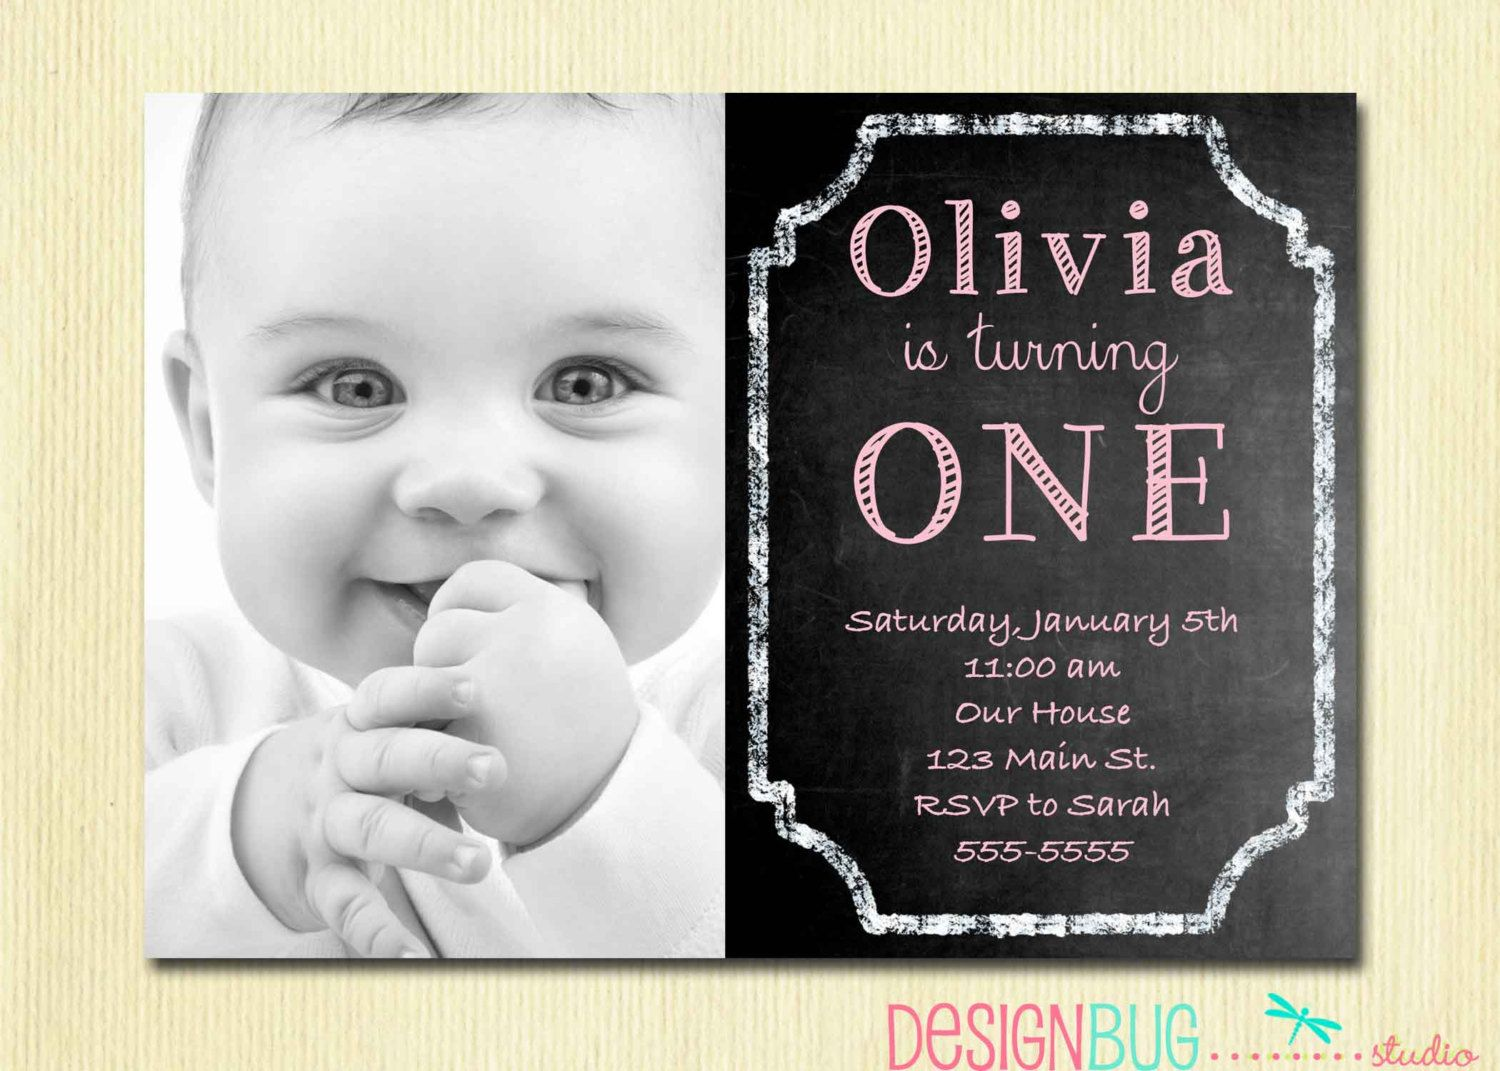 1st birthday girl invitation custom chalkboard photo invitation 1st birthday girl invitation custom chalkboard photo invitation printable 1 2 3 4 5 year old up to any age birthday invite stopboris Gallery